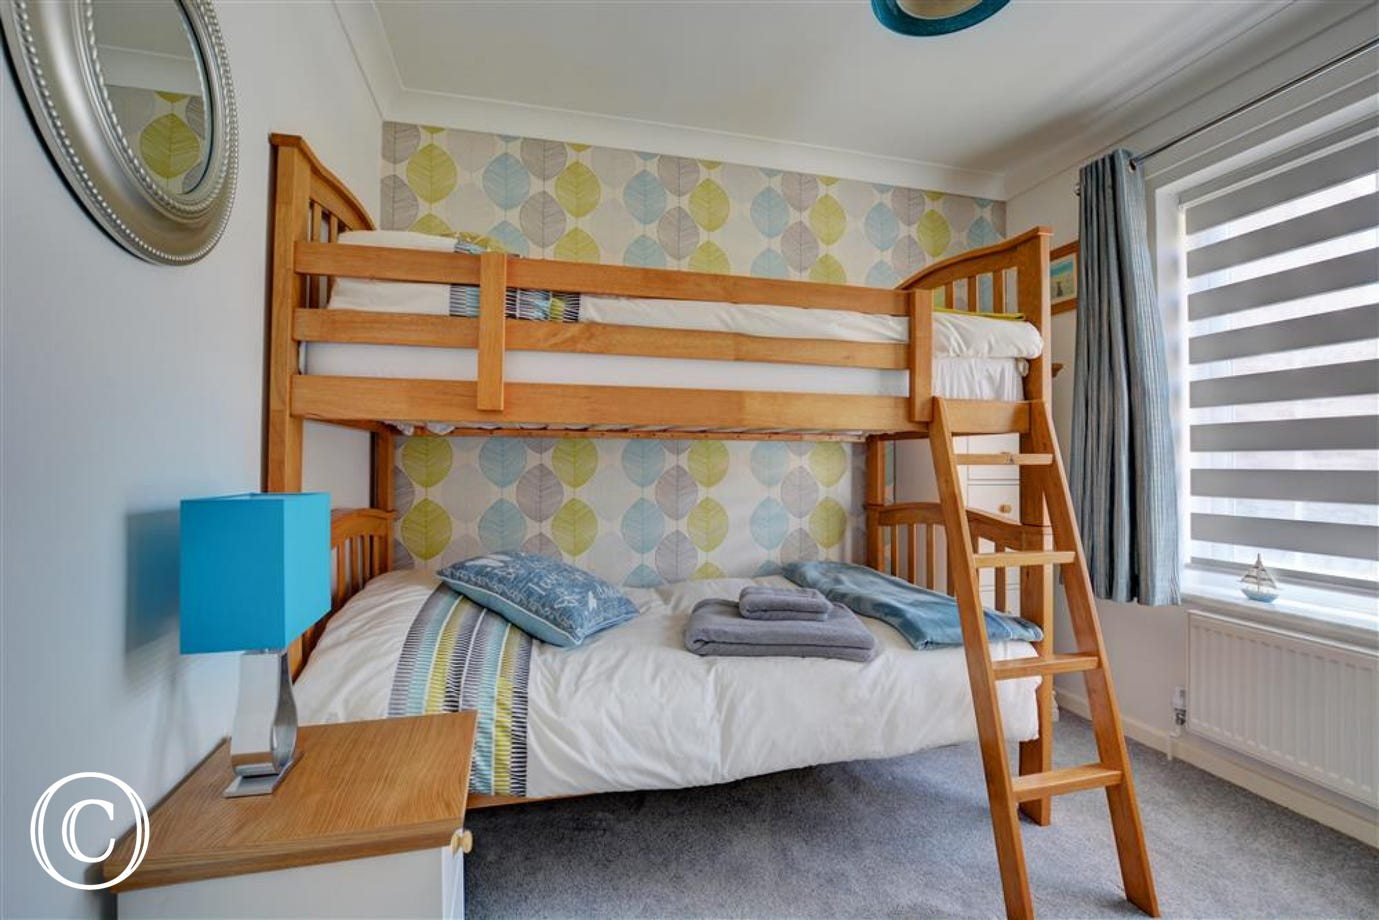 Bedroom three has bunk beds